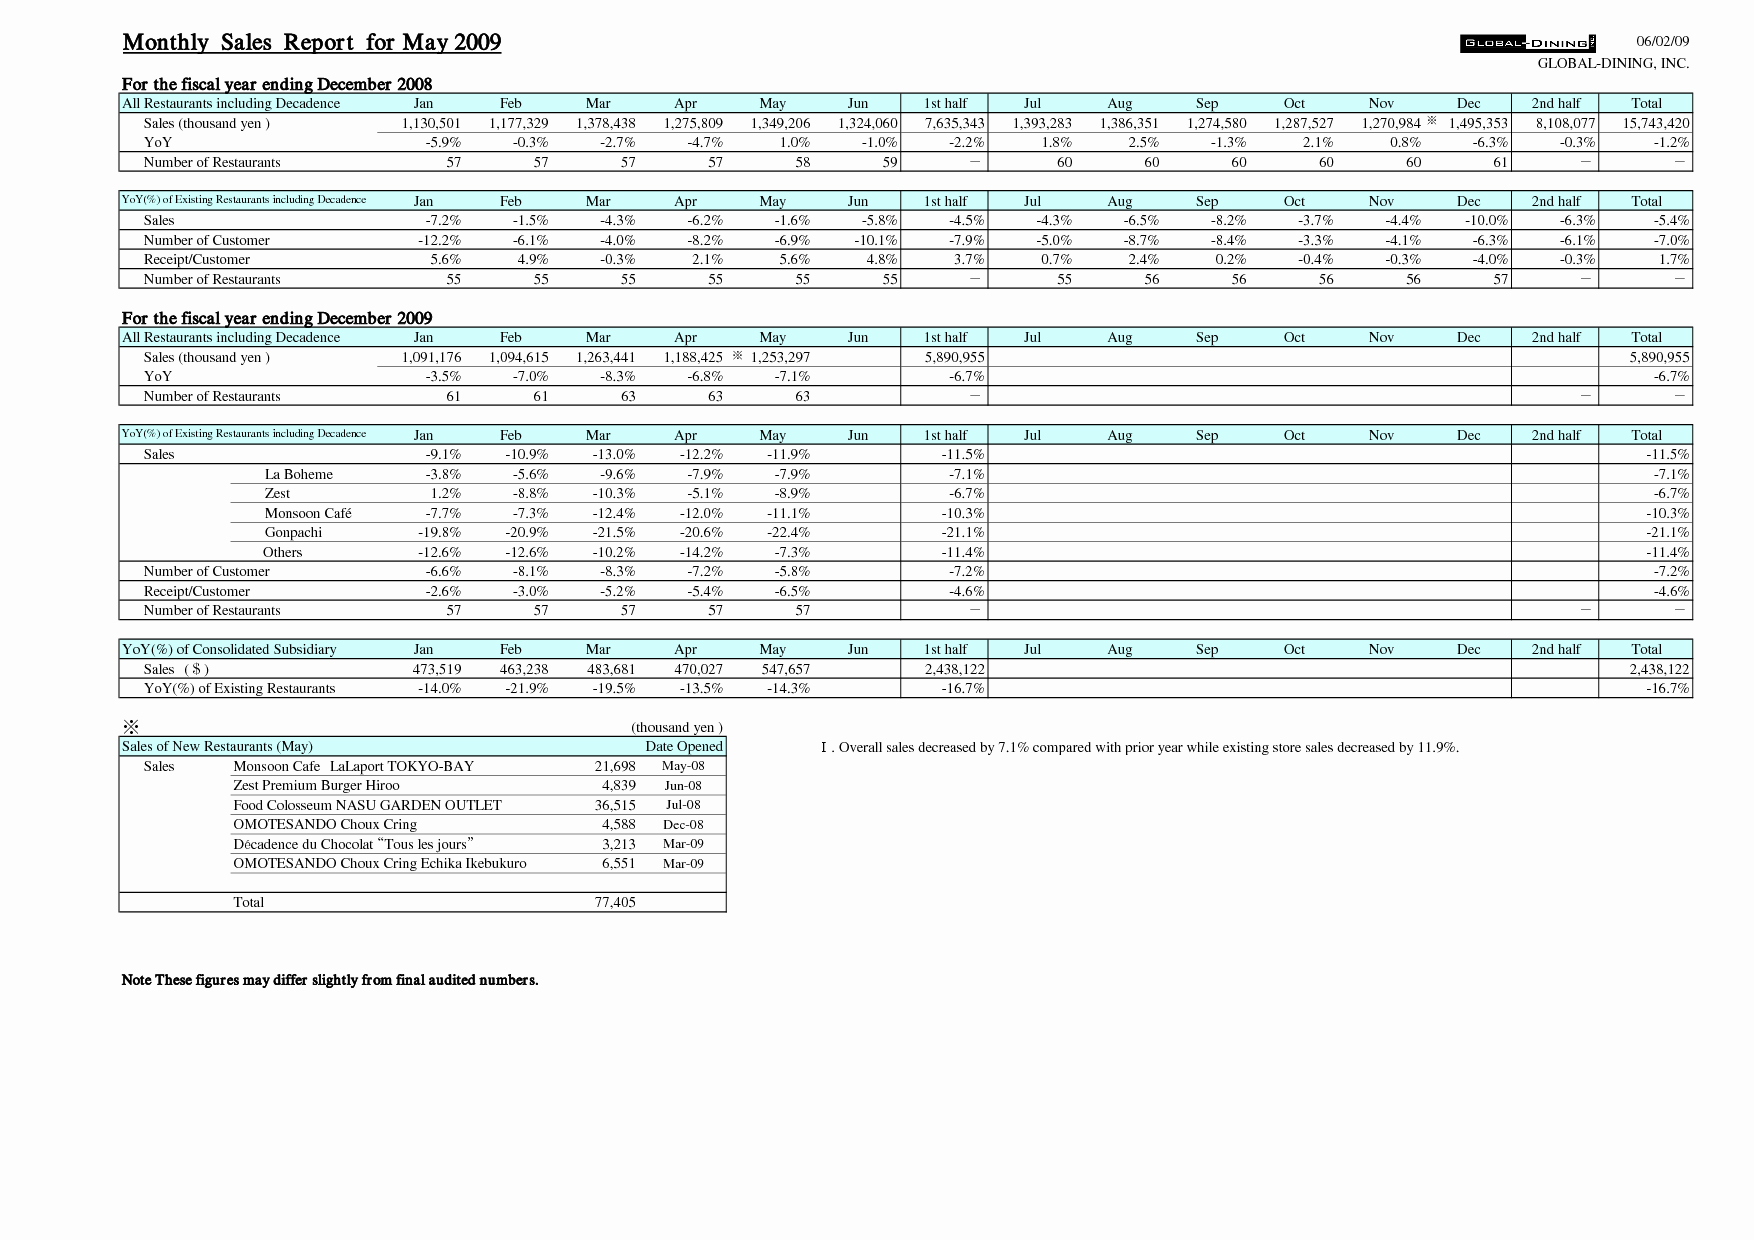 Exceptional Quarterly Sales Report Spreadsheet Template